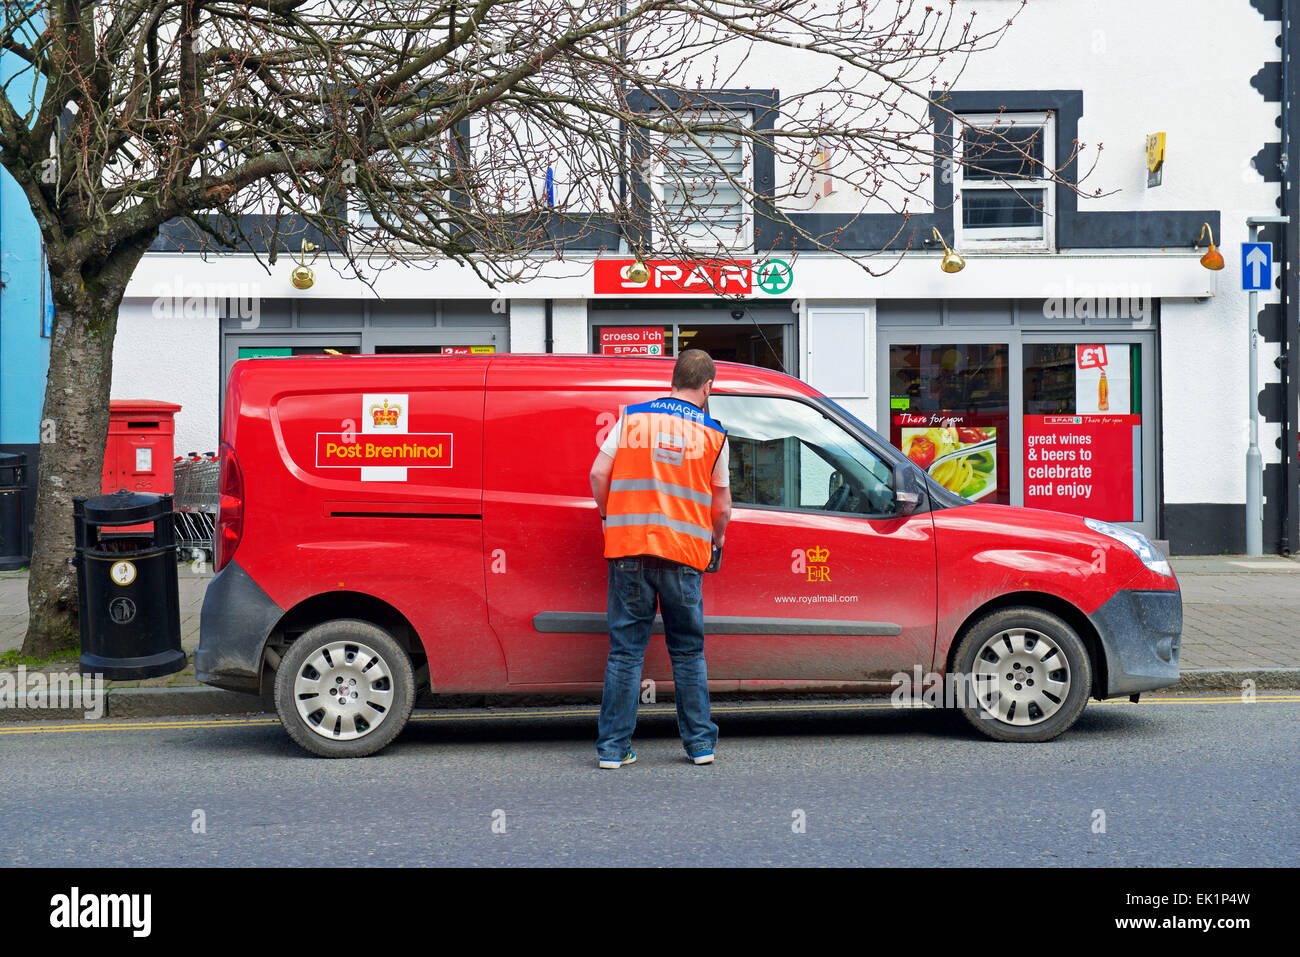 Postman and Royal Mail van - Stock Image